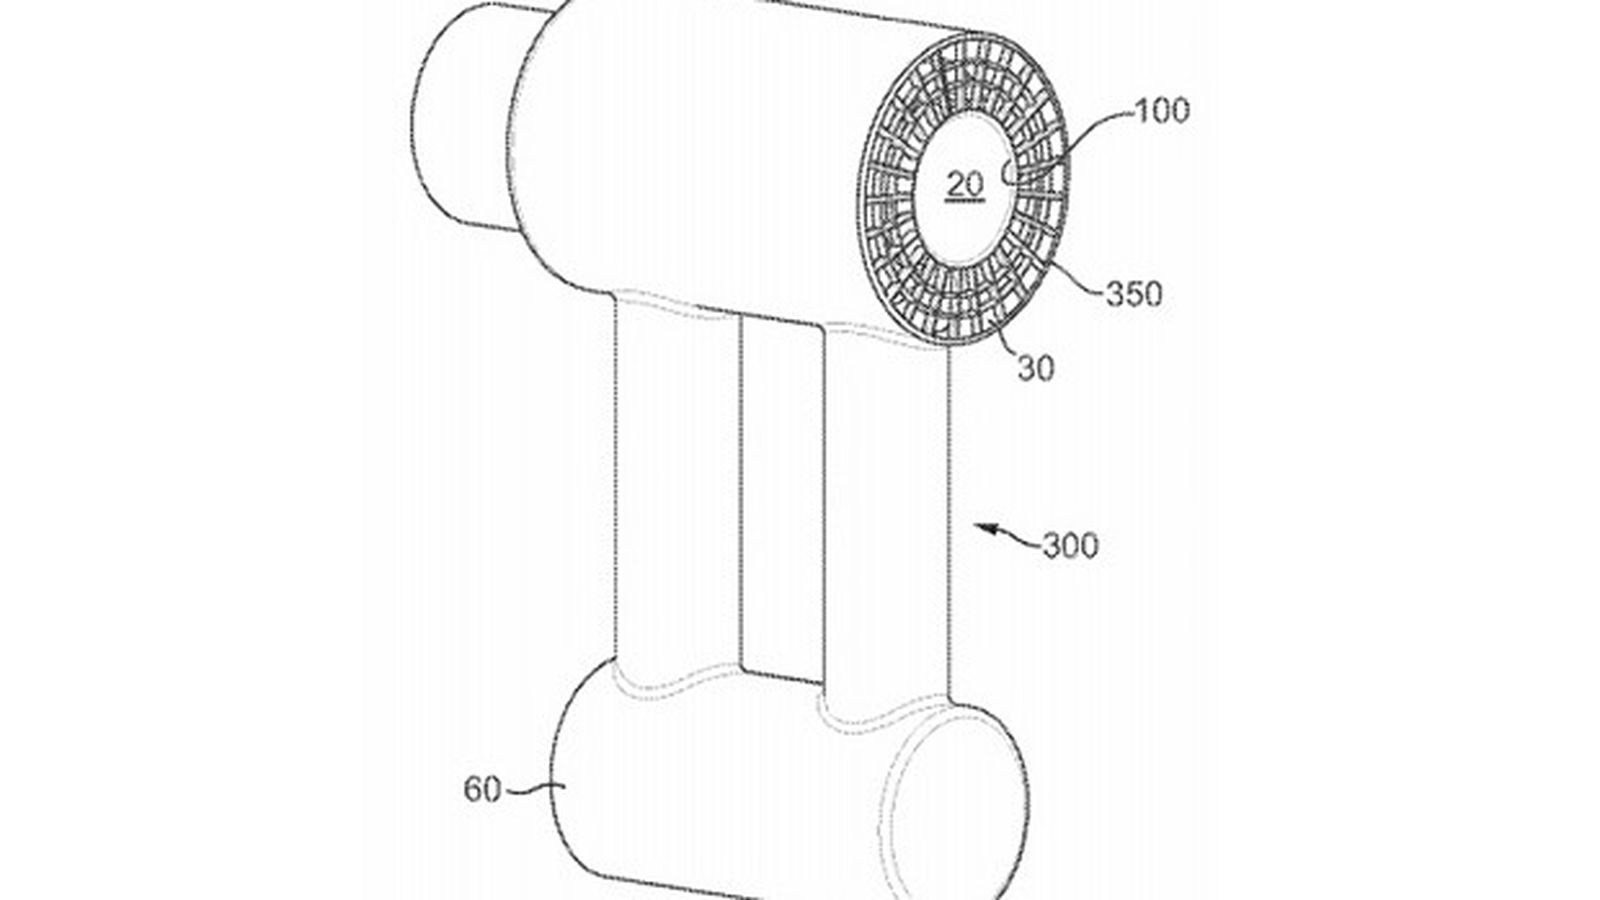 dyson wants to silence the hair dryer  according to patent